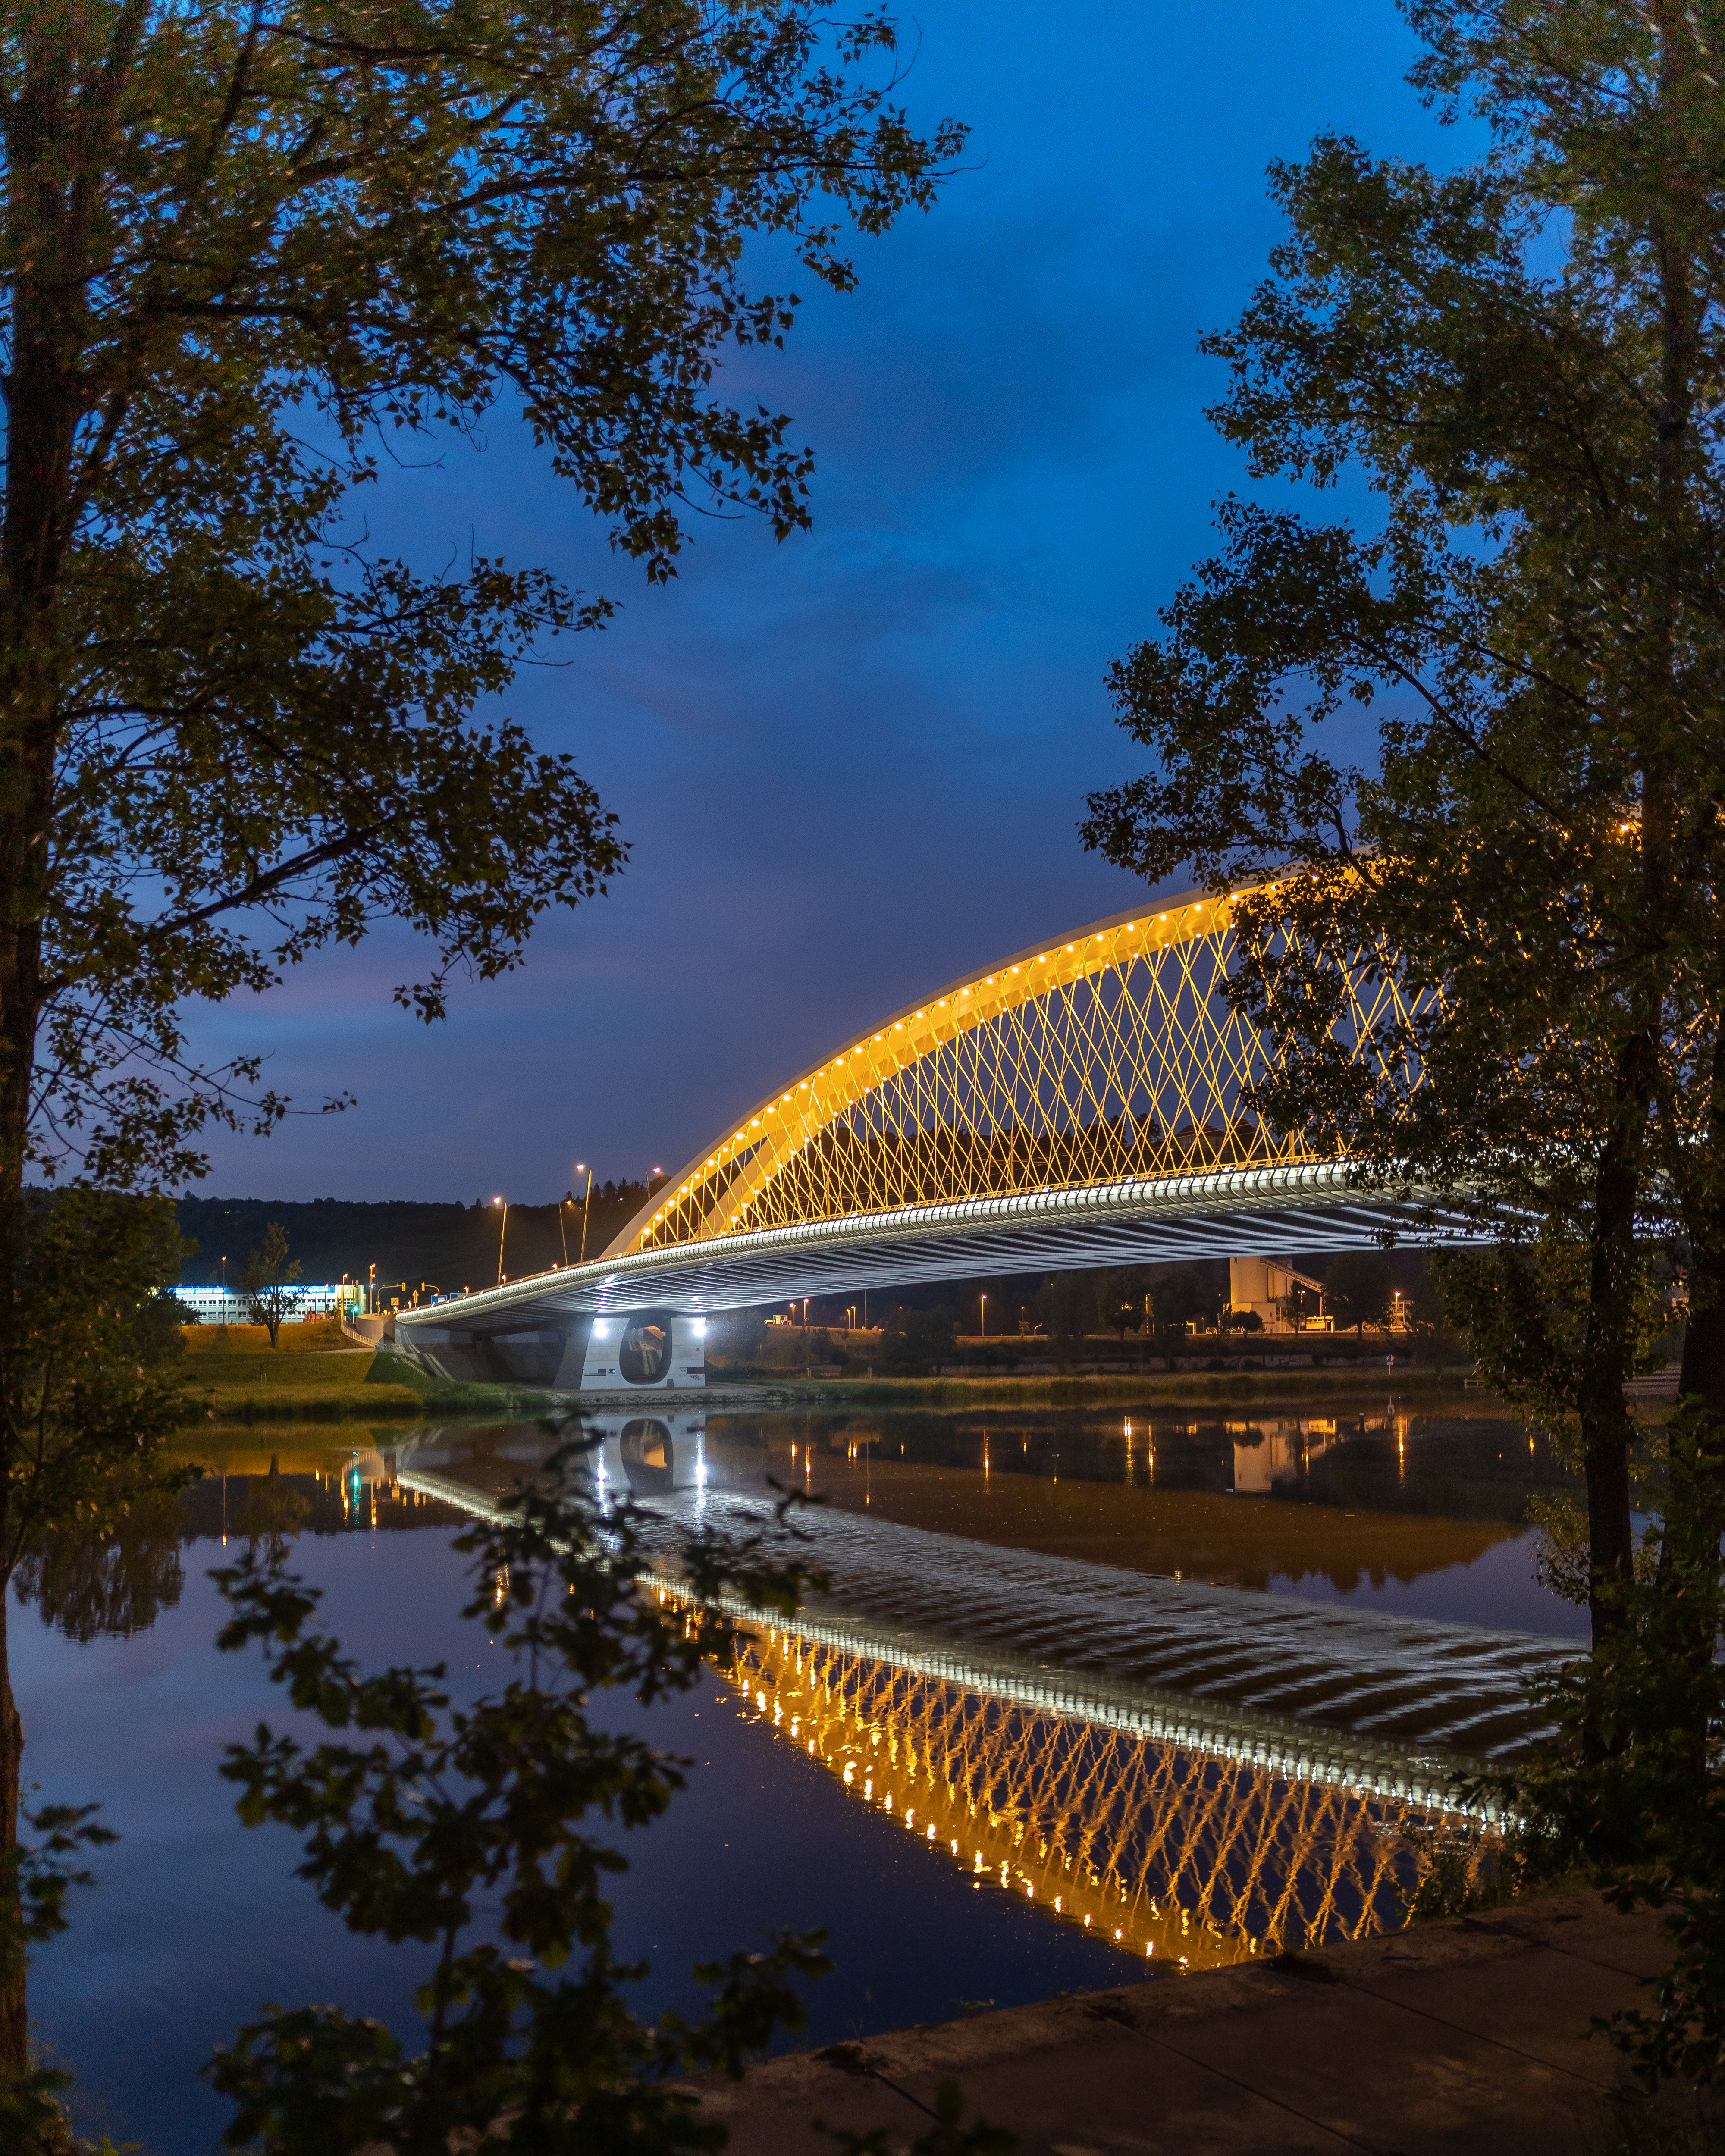 149881 download wallpaper Bridge, Lights, Branches, Rivers, Architecture, Cities screensavers and pictures for free